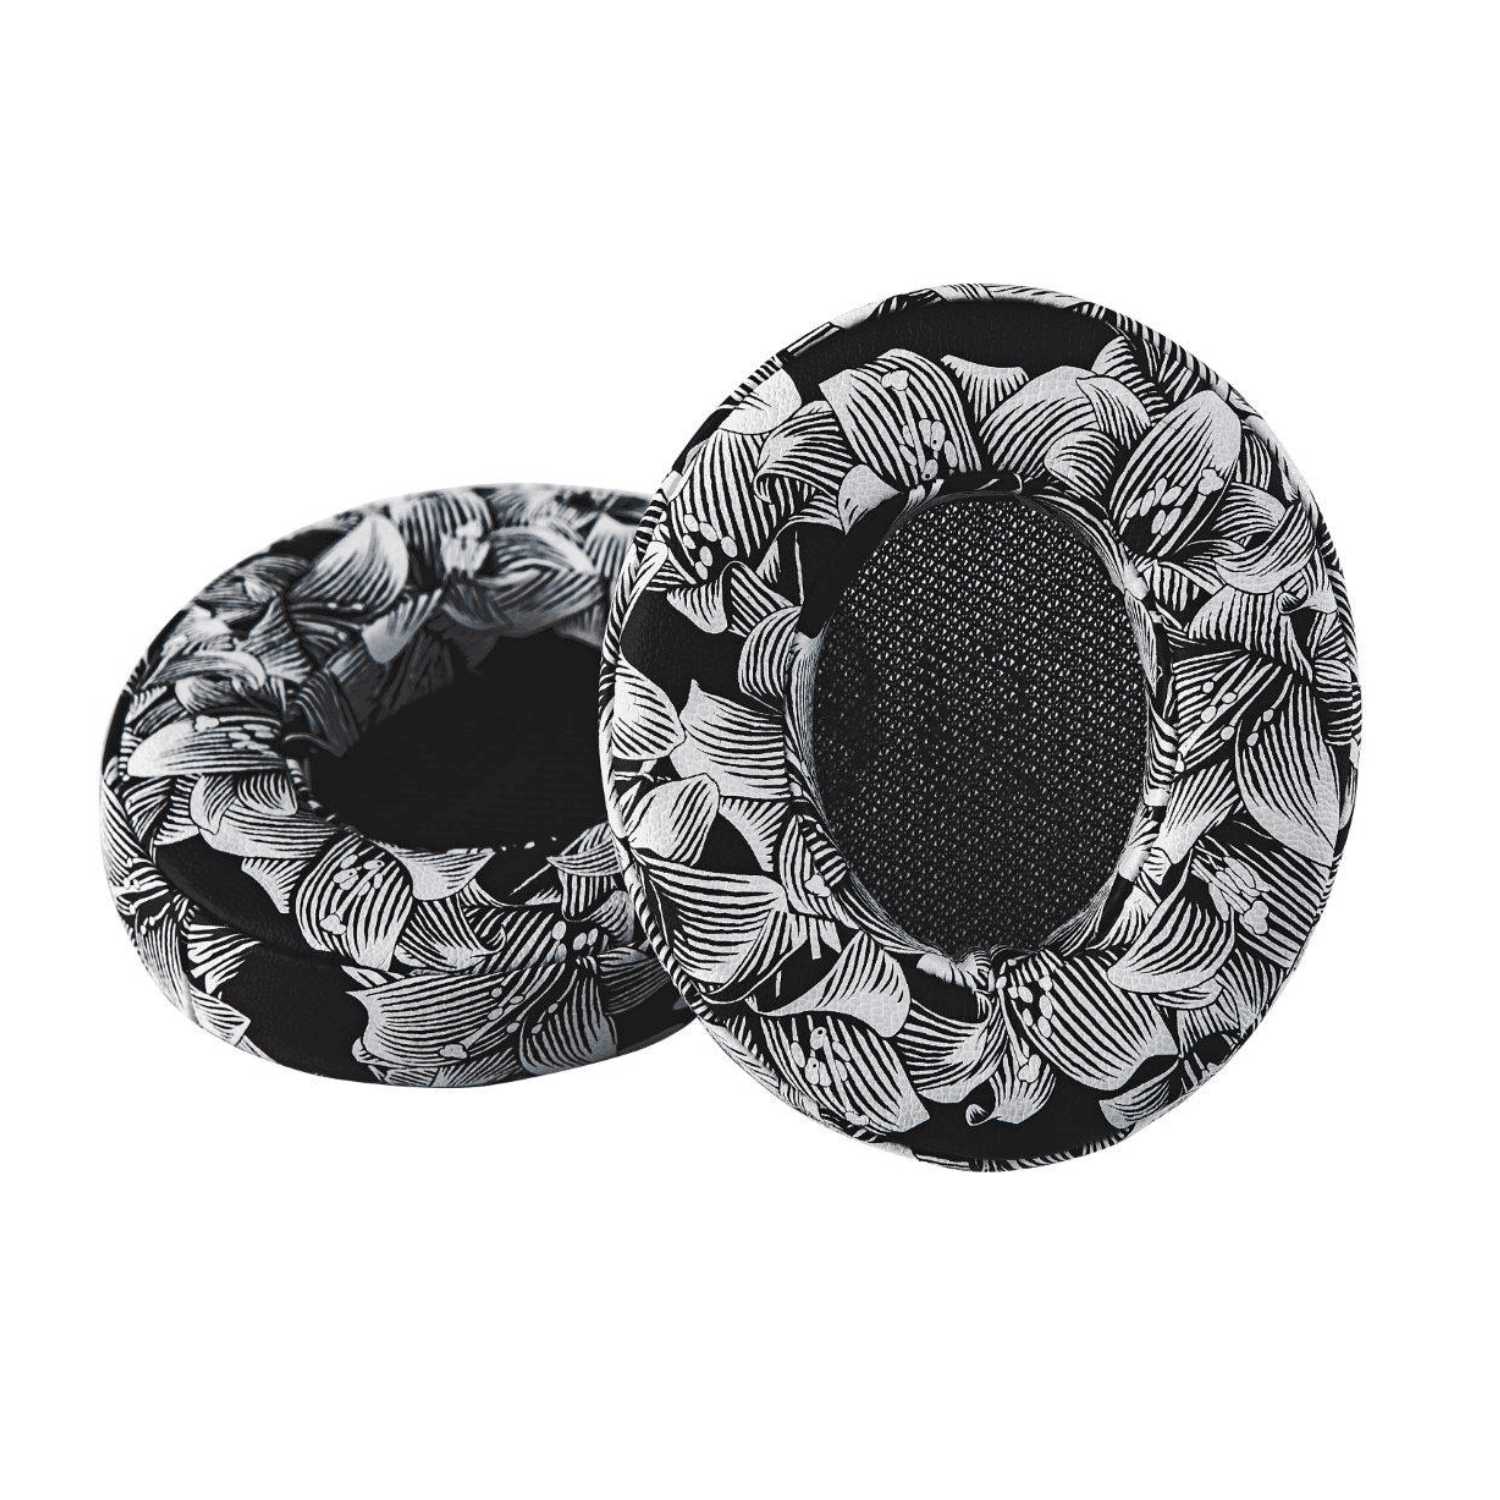 BOOM ear-cushions Black & White